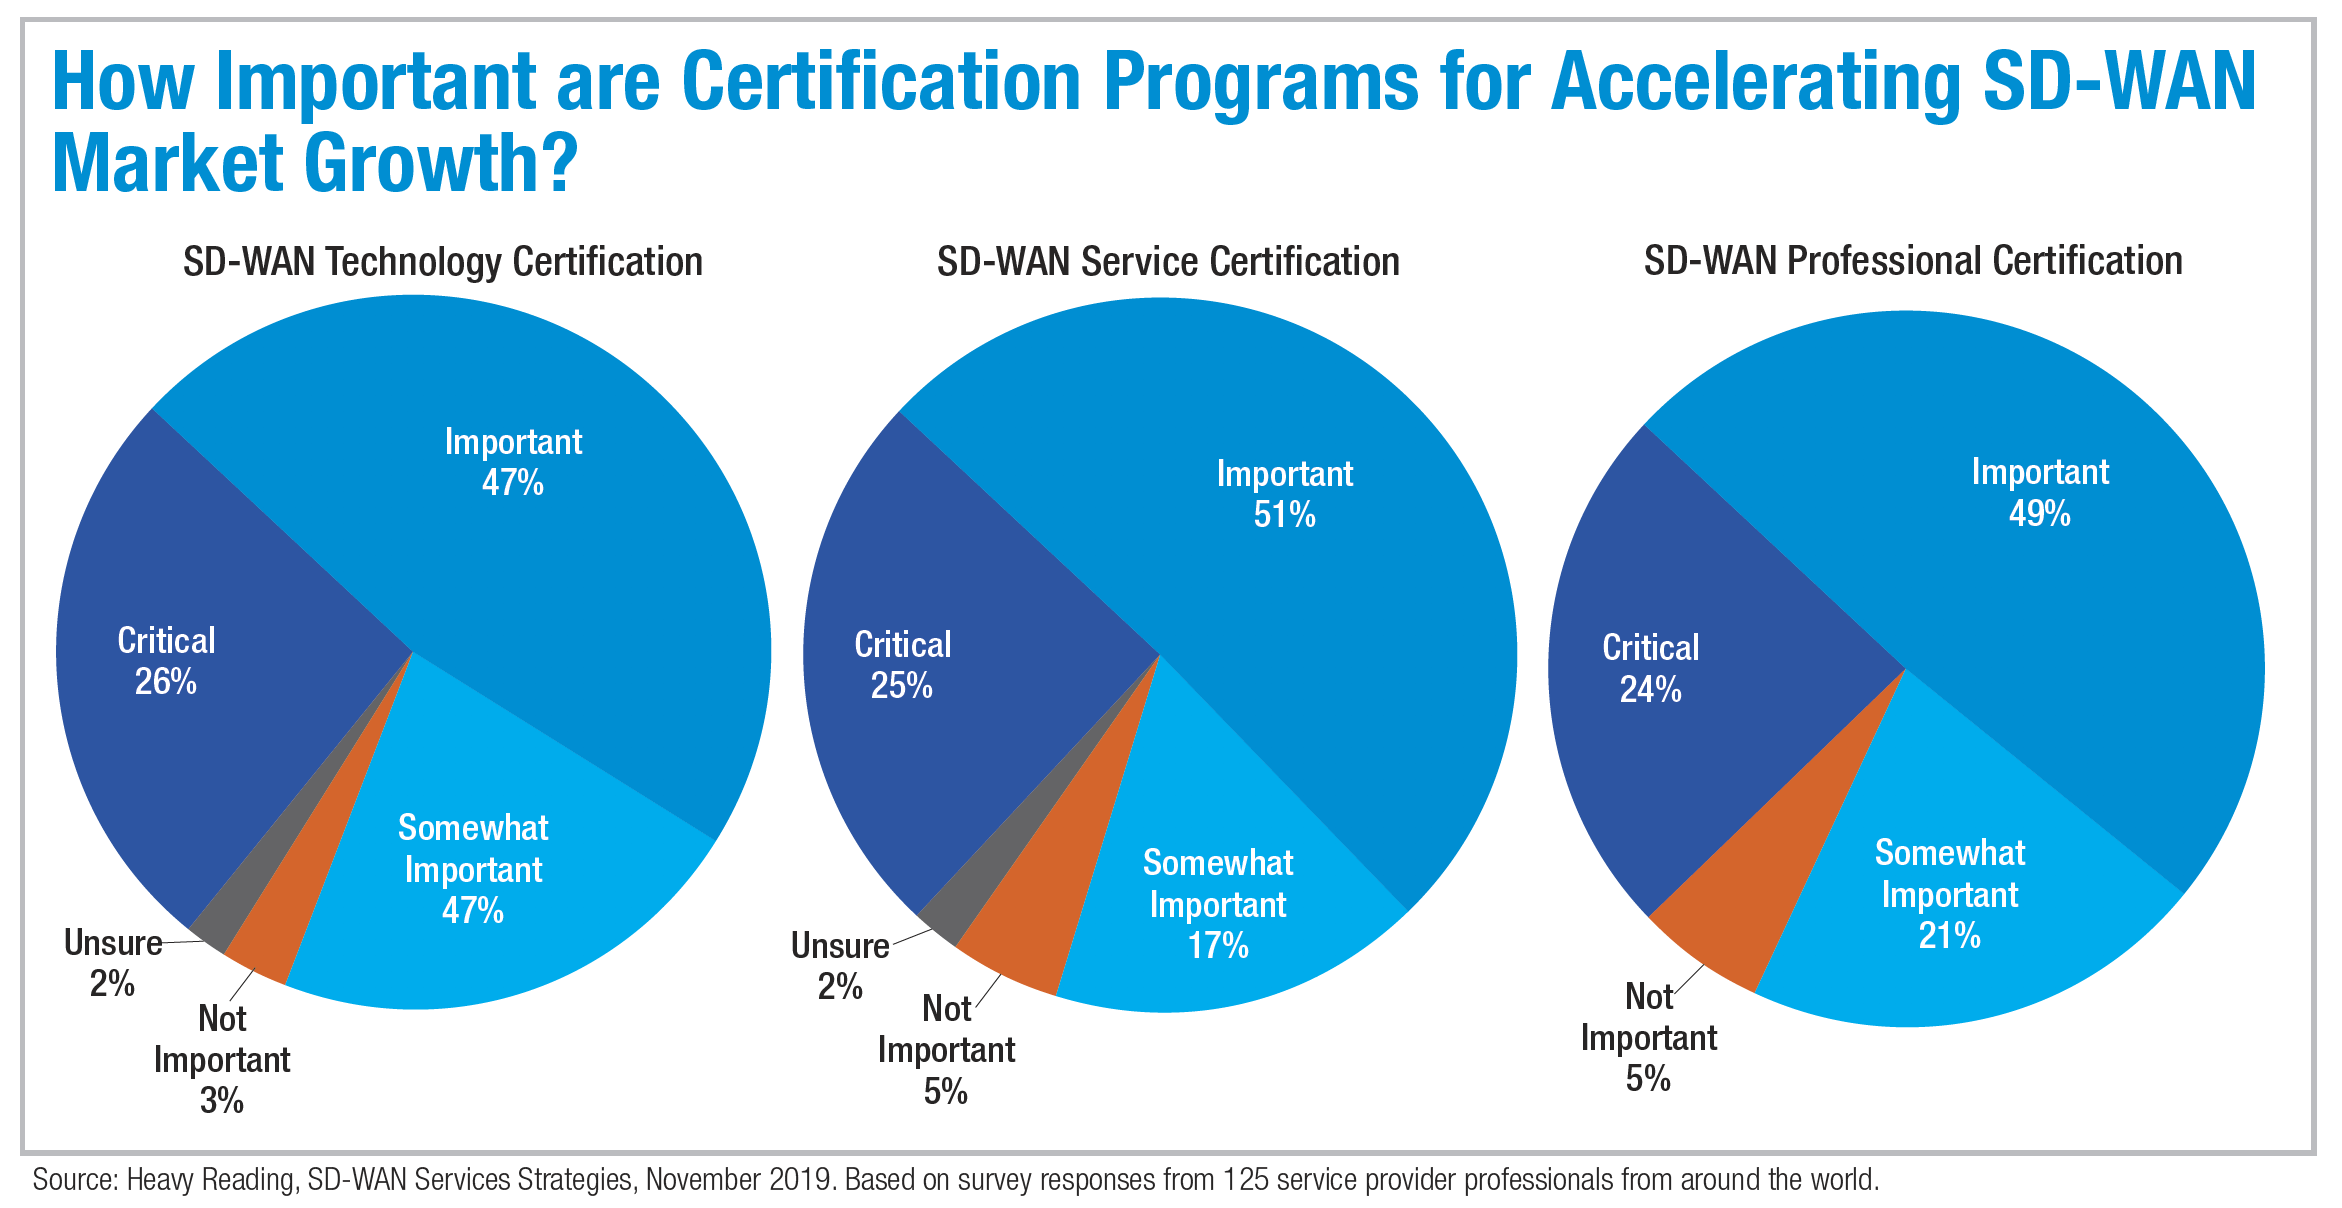 How Important are Certification Programs for Accelerating SD-WAN Market Growth?